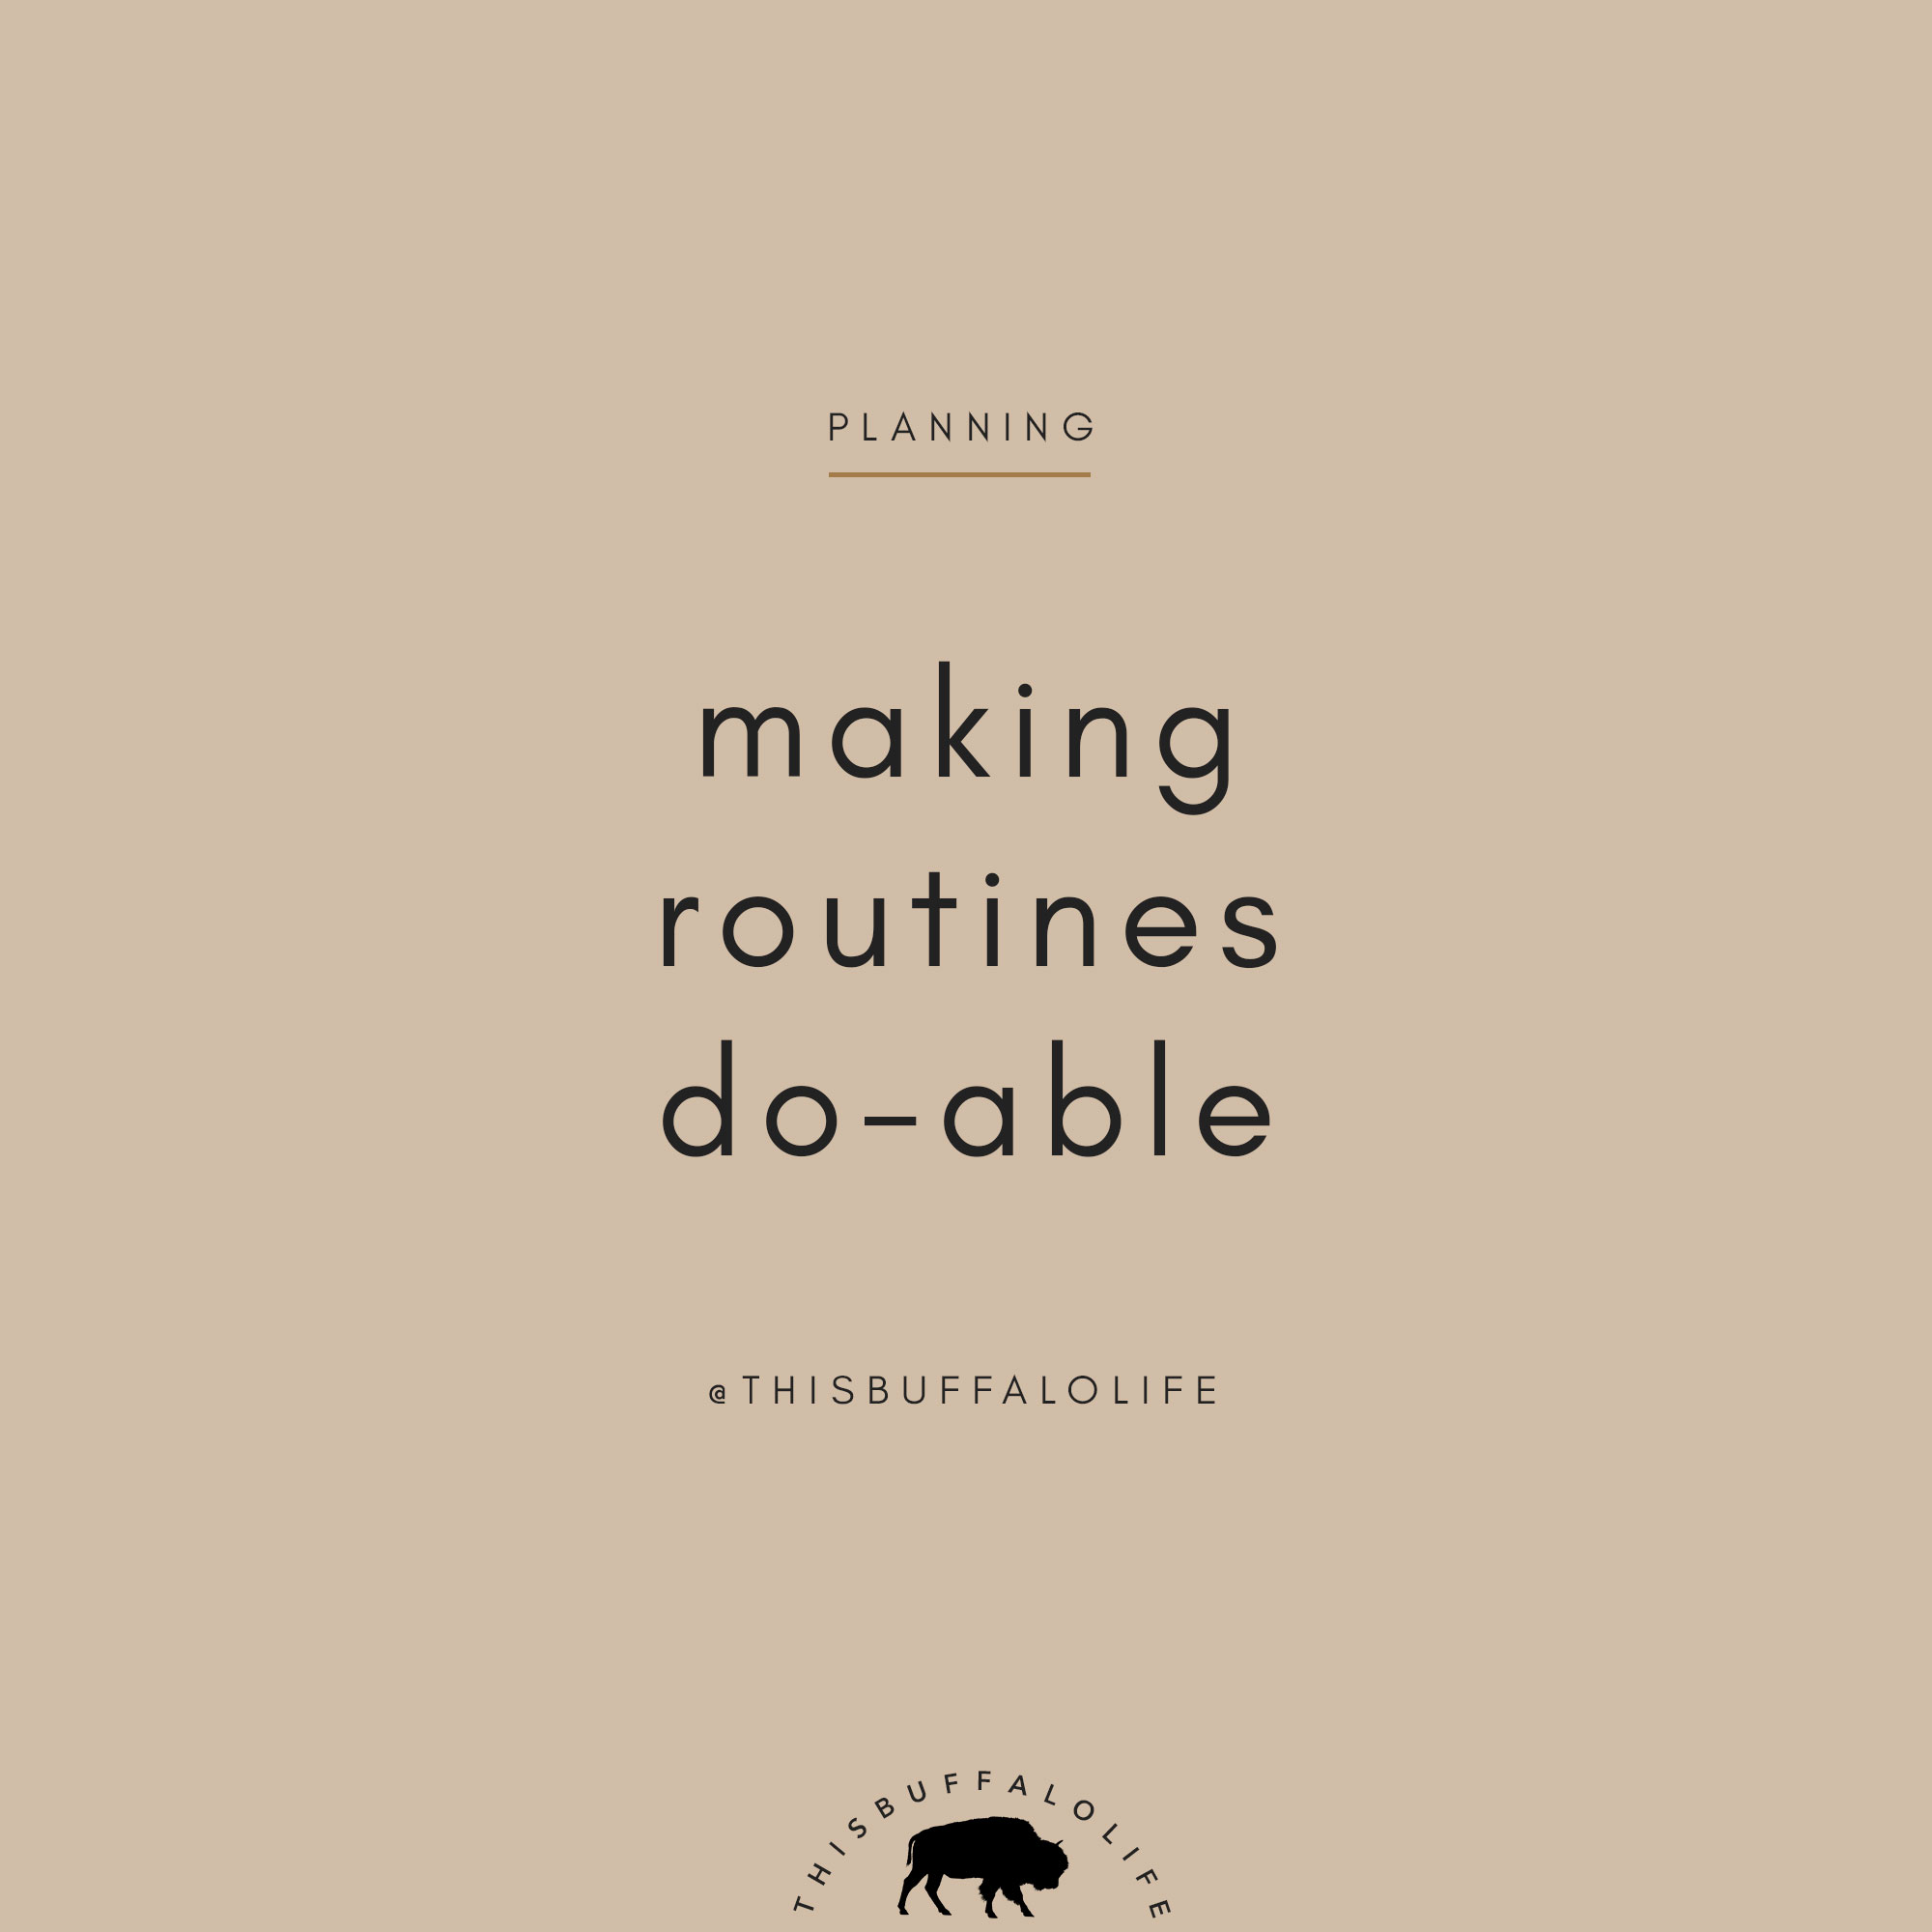 routine-doable.jpg